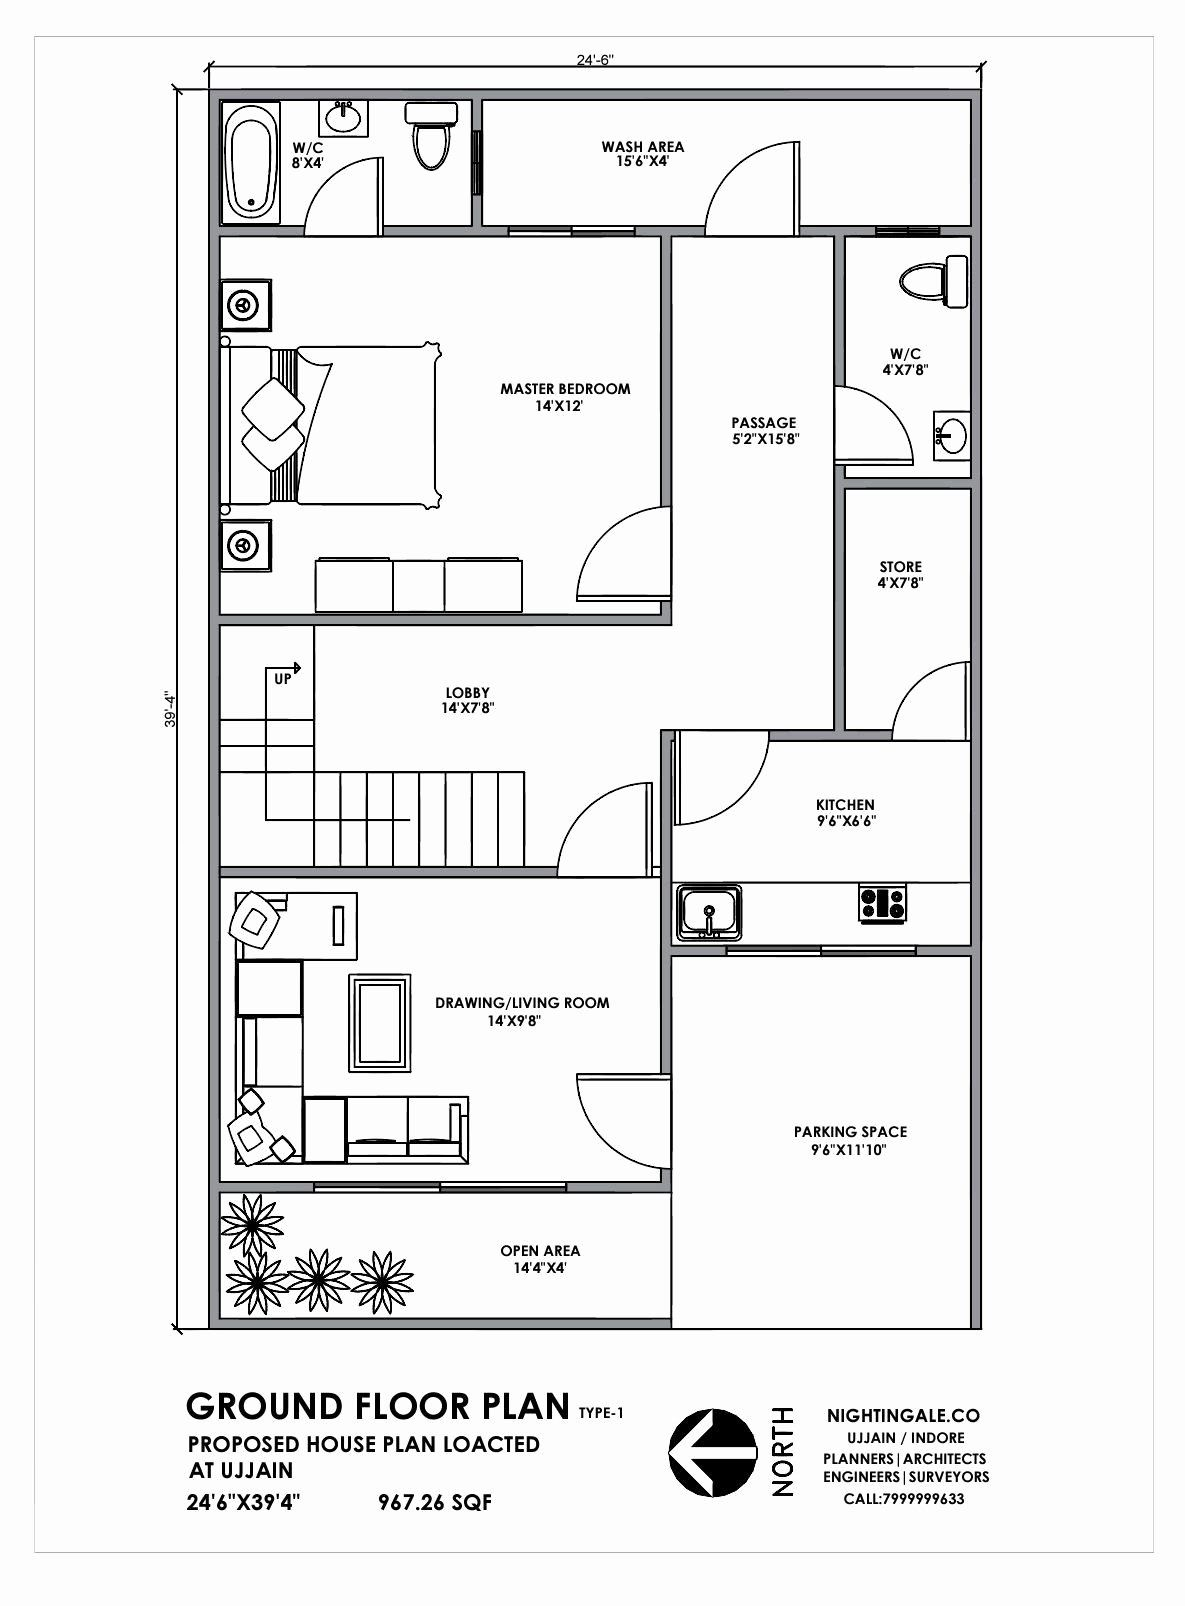 14 Foot Wide House Plans Inspirational 24 40 Ft Wide House Plans House Plan 25x40 Feet Indian Plan In 2020 20x30 House Plans Indian House Plans 20x40 House Plans